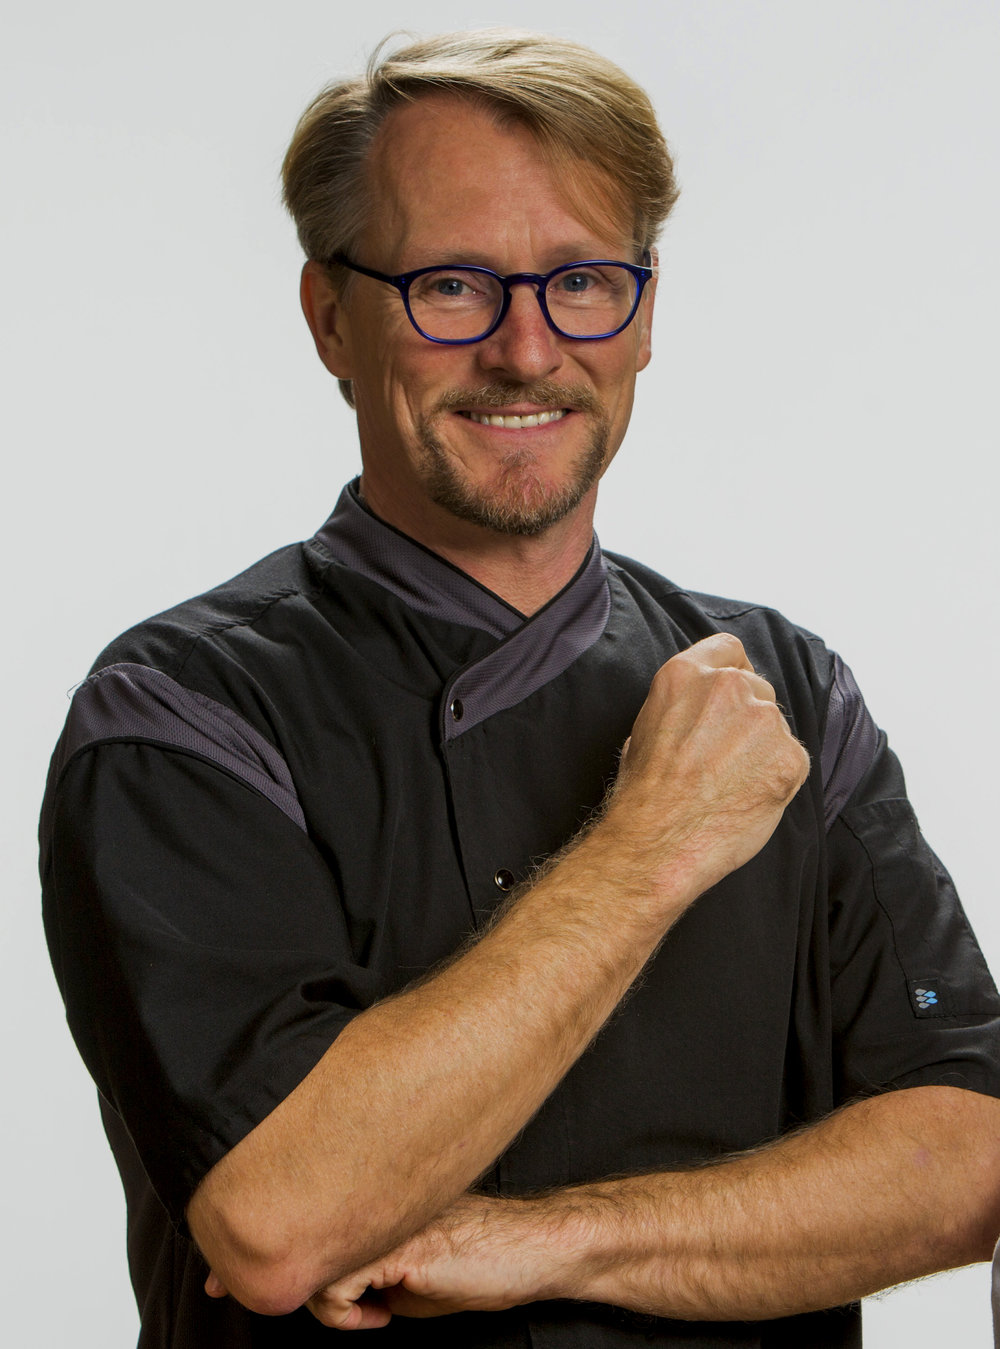 JAMES SANT - Plant-food chef James Sant, has been a professional artist for the past 30 years. Though much of this was dedicated to visual arts (sculpture, clay art, photography, and art administration) his ardent exploration of healthy food has been a lifelong journey. In the eighties his focus was upon vegetarian and Macrobiotic training. In the nineties, this expanded to include Thai food culinary courses and an avid exploration of wild fermentation.In 2010, James was very seriously injured and chose to avoid unnecessary surgeries and prescription drugs though studying plant food as medicine. This choice would dramatically expedite his healing process, improve his health, and pave the way to a passionate new career. He completed his Mastery of Raw Vegan certification training at Living Light Culinary Institute in 2013. In addition he received his Raw Vegan Pastry Arts and Gourmet Raw Chef certifications. He was invited to join the teaching staff at Living Light in 2013.Today James is the Culinary Programs and Creative Director of Living Light International (rawfoodchef.com). He teaches vegan and raw plant-based recipe development, personal coaching, and the art of food photography to students from around the globe. As a registered Yoga instructor, he promotes optimal health through the daily practice of physical, nutritional and spiritual understanding. His mission is to be an active participant in actualizing and manifesting a global understanding of the integral relationship between plants and a healthy lifestyle.